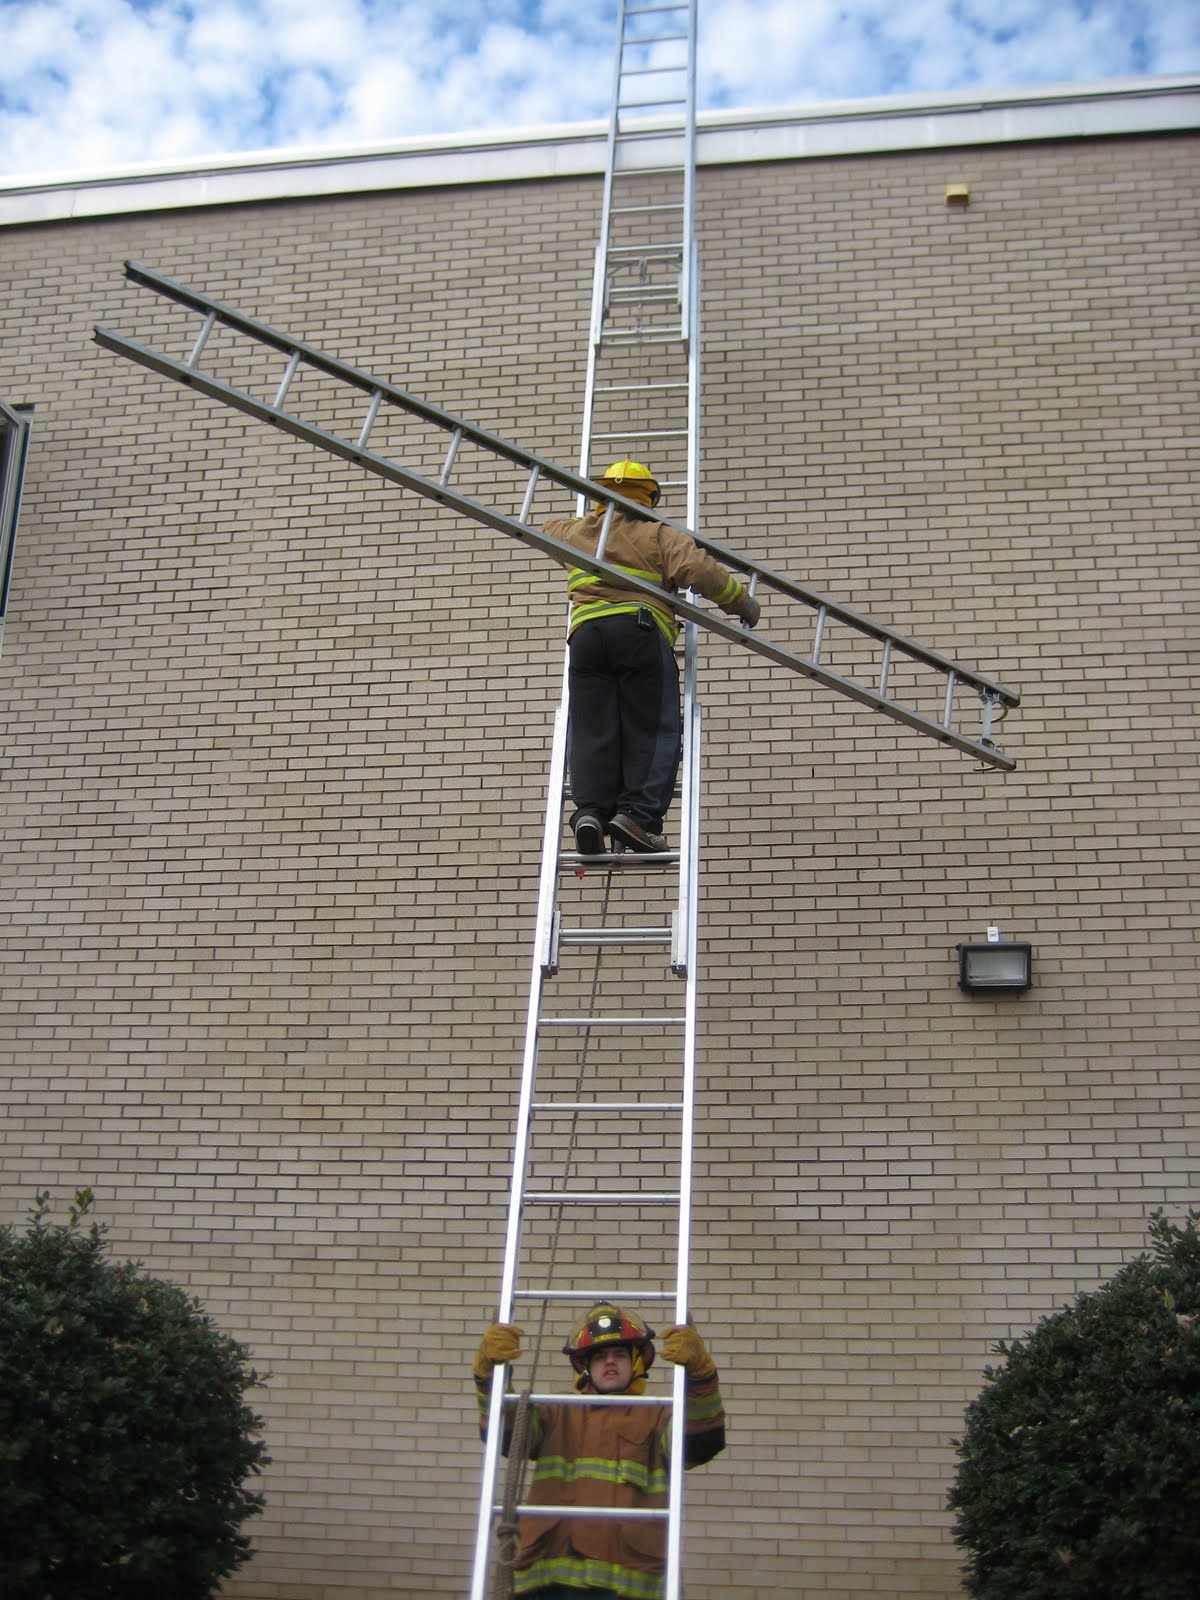 Roof Extension Ladder Amp Placehold Placehold Placehold